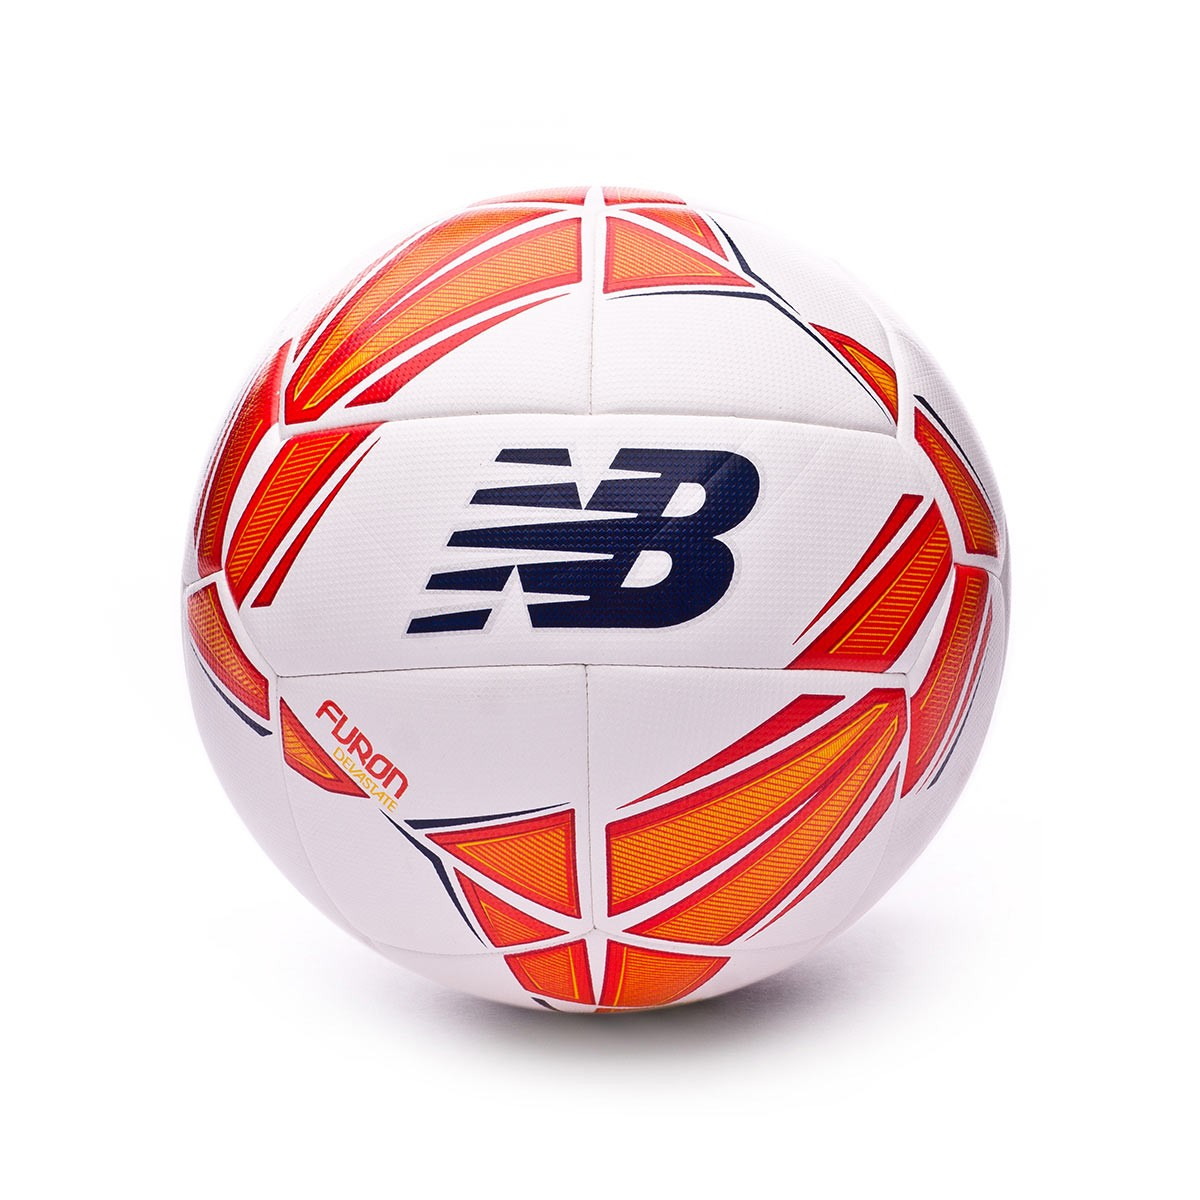 735393fc62d12 Ball New Balance Devastate Flame - Football store Fútbol Emotion